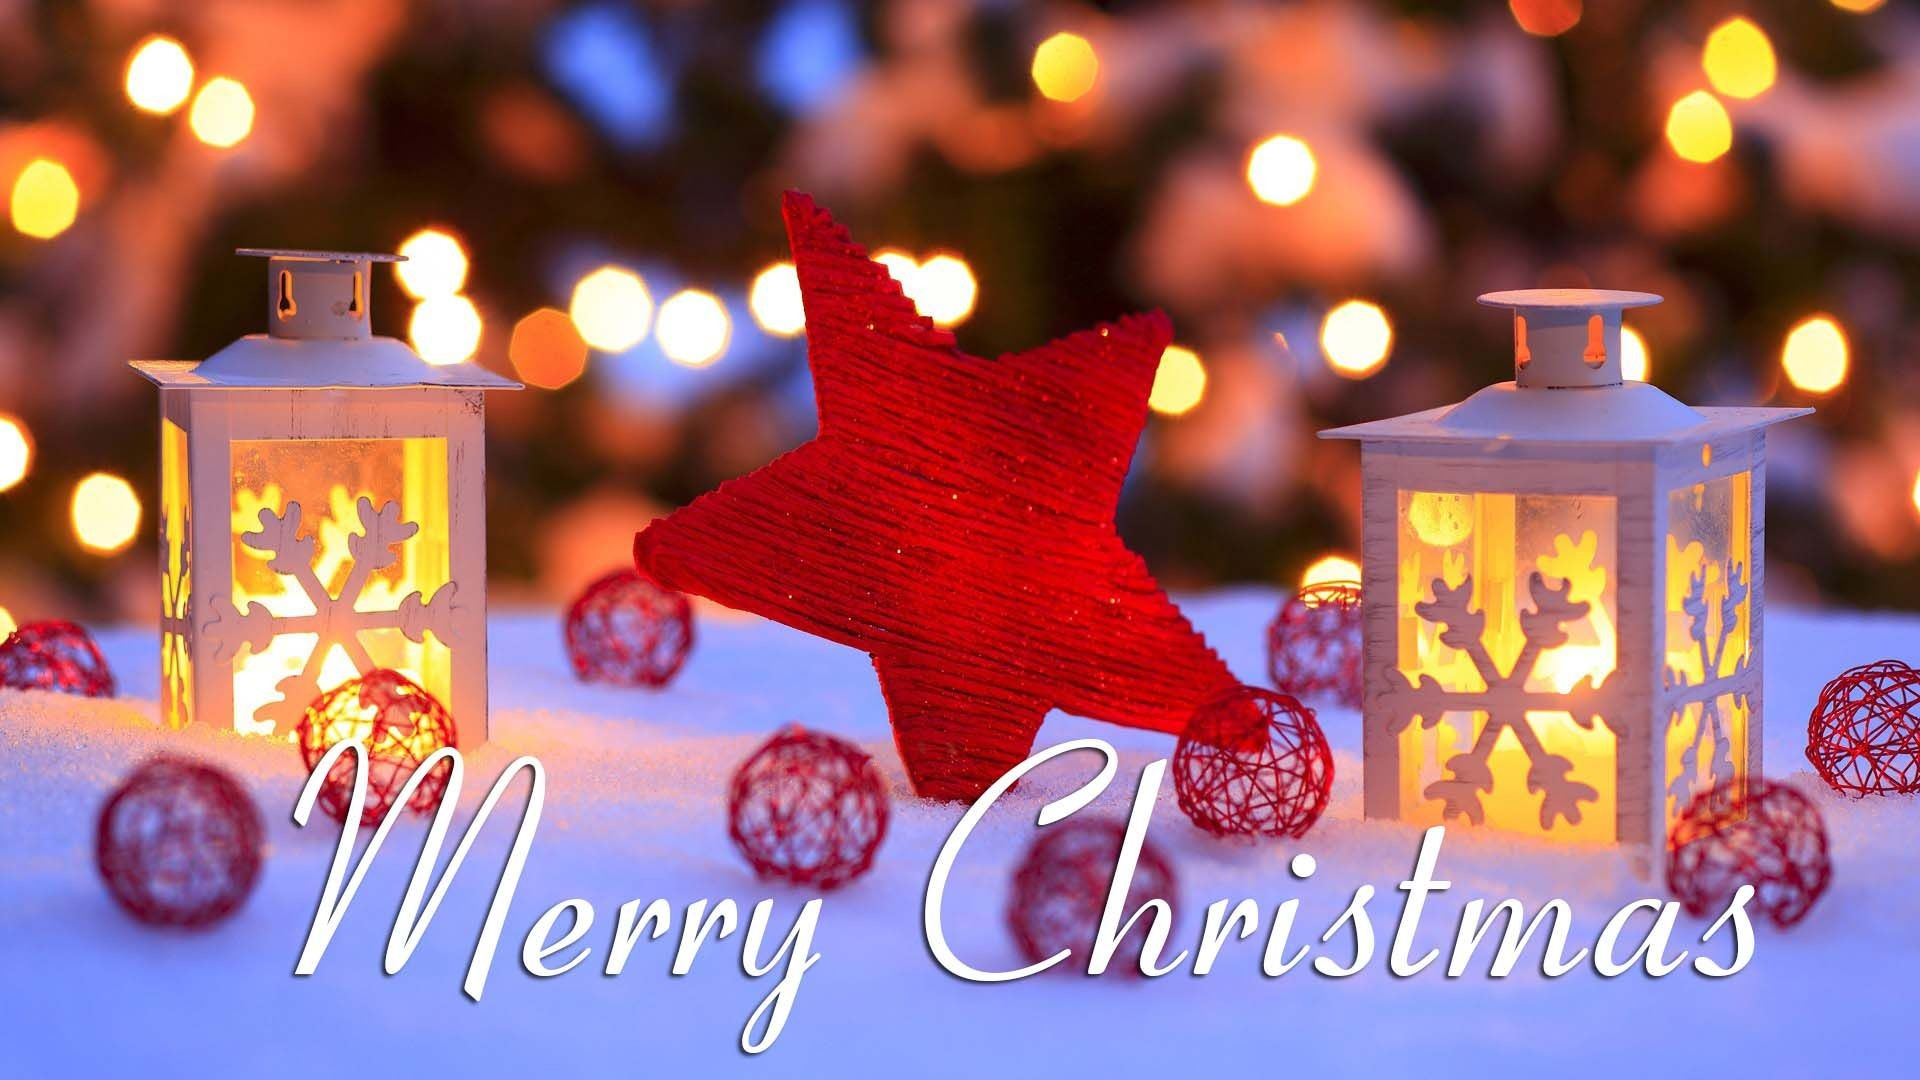 Merry Christmas 2017 : Christmas Quotes, Wishes, SMS, Greetings, Images and  Wallpapers